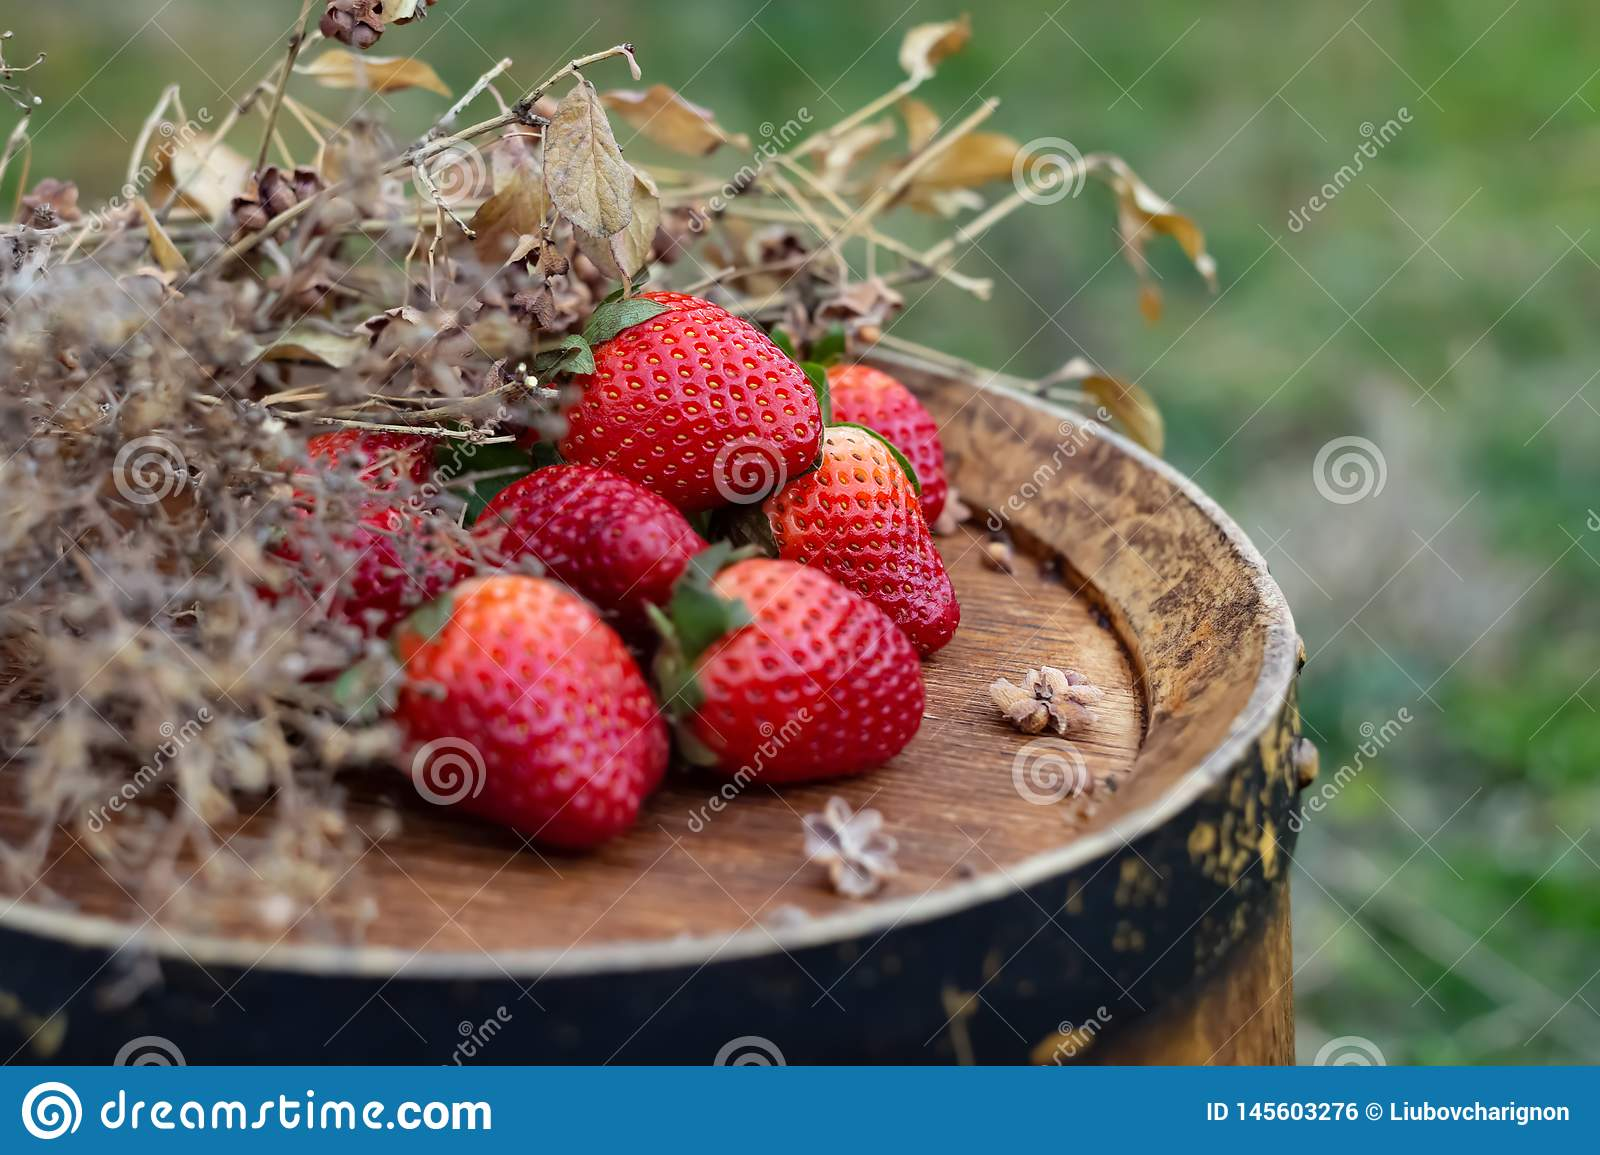 Strawberries on a wine wooden barrel in an orchard in summertime.